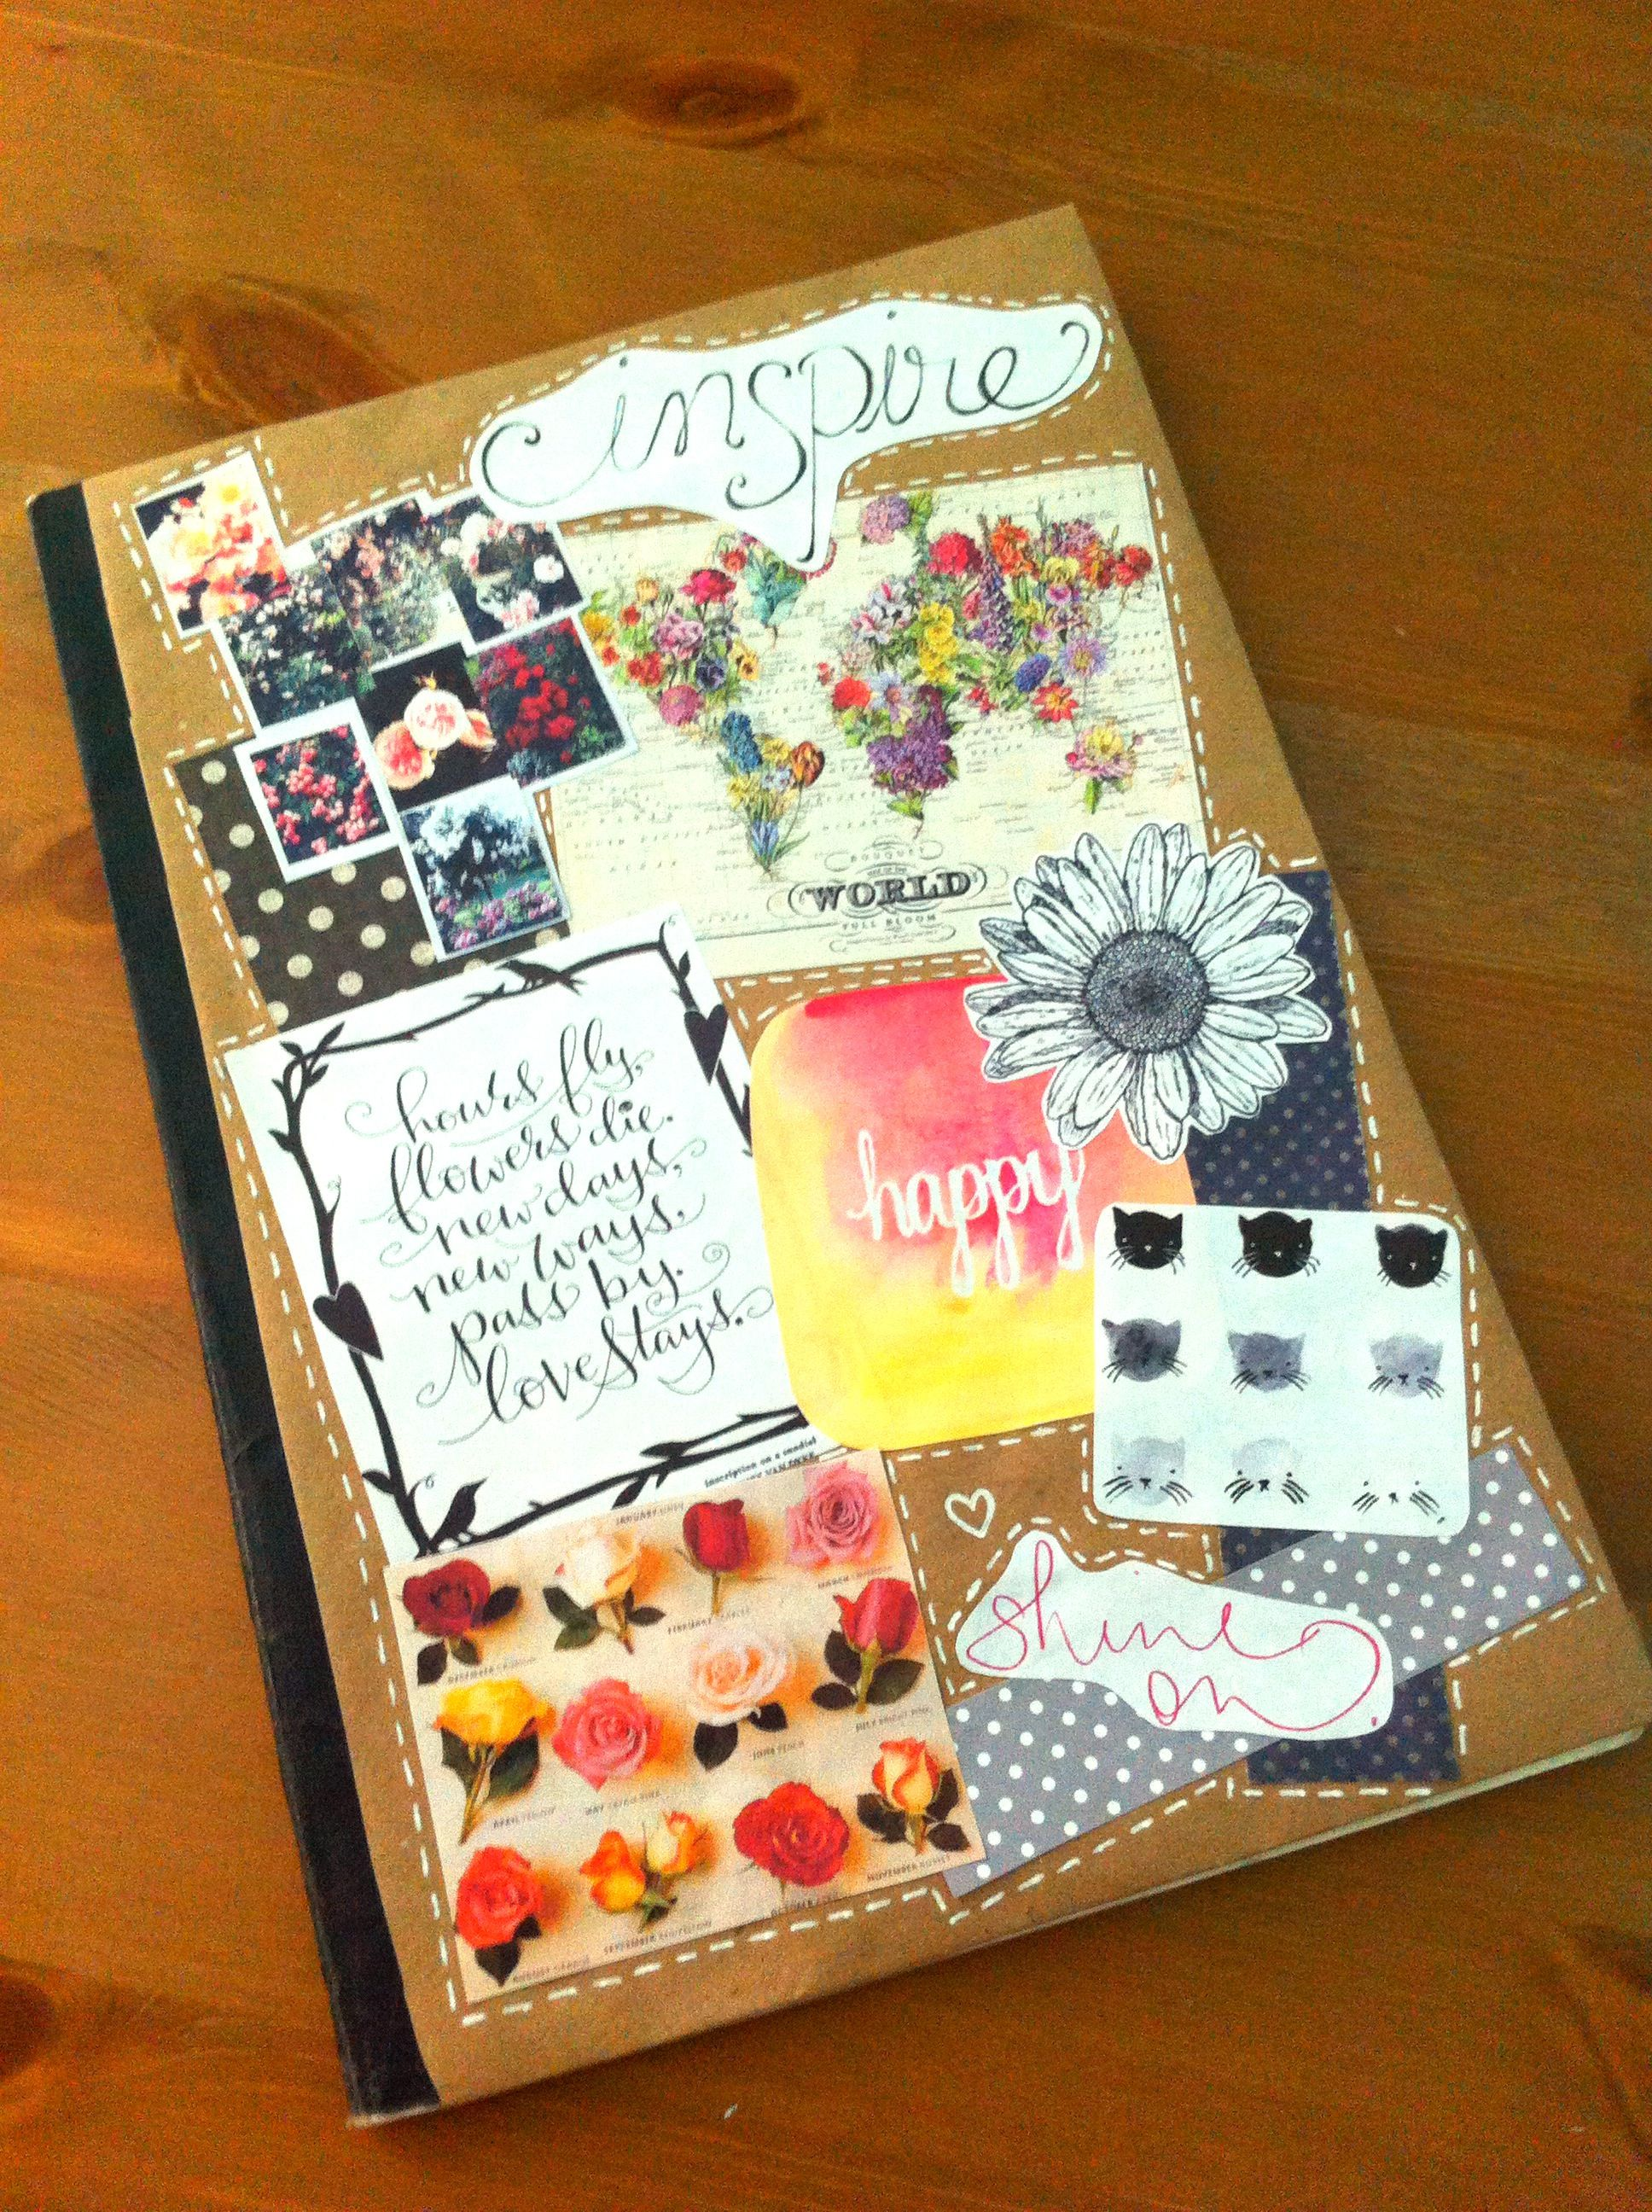 Kpop scrapbook ideas